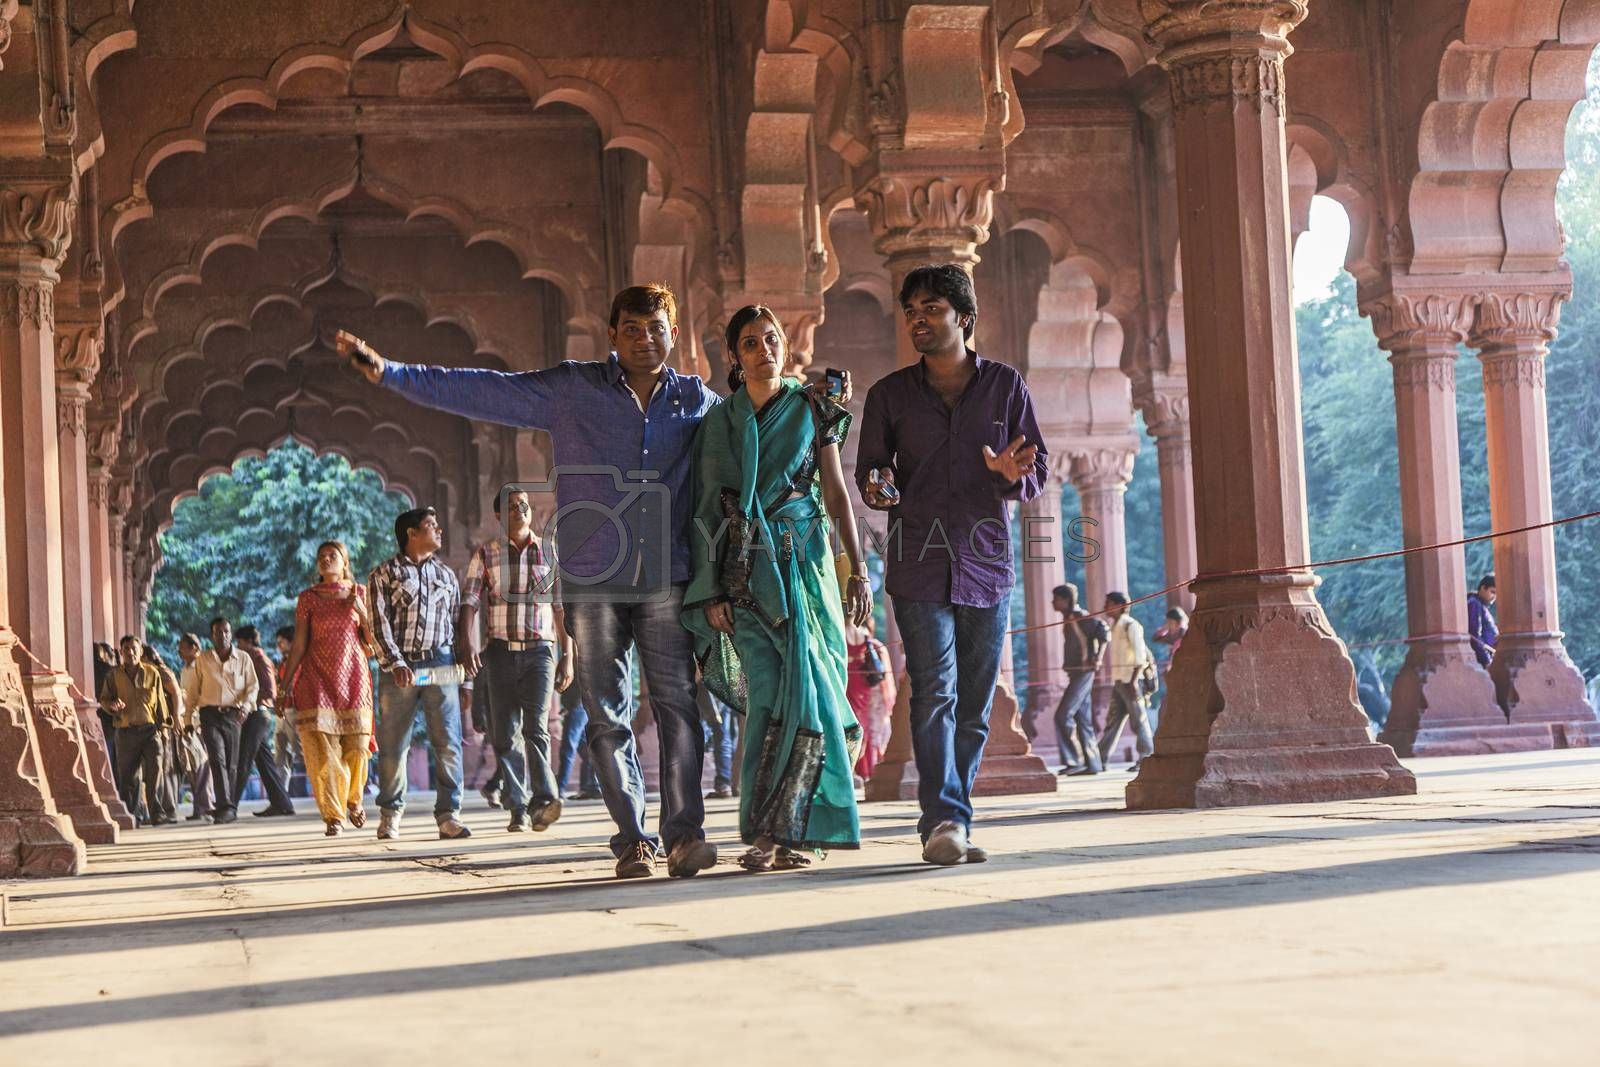 DELHI, INDIA - NOV 11, 2011: people visit the Red Fort in Delhi, India. Red Fort is a 17th century fort complex and was designated a UNESCO World Heritage Site in 2007.